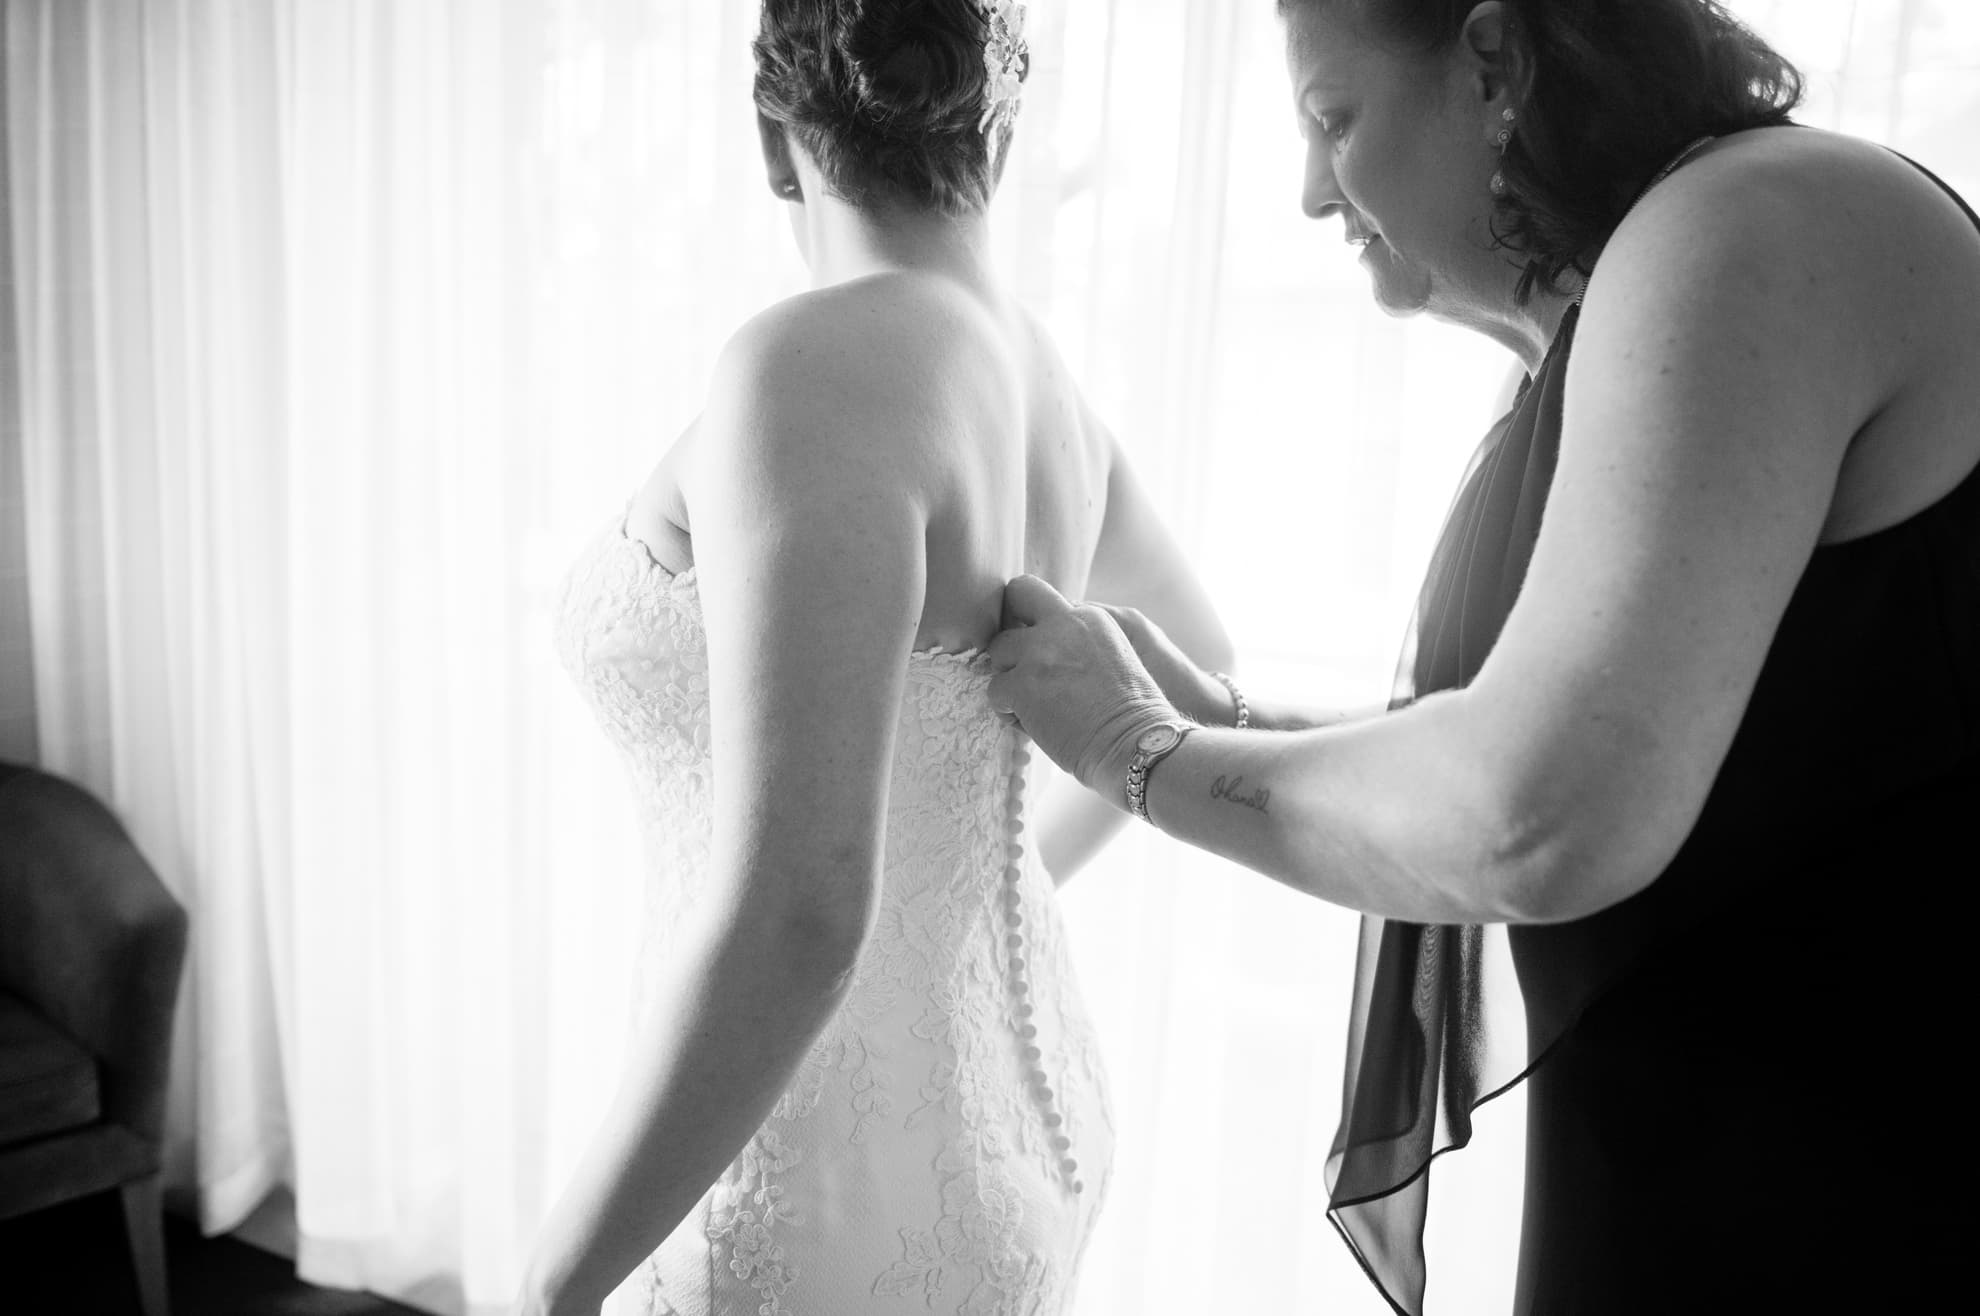 mum-helps-bride-into-her-wedding-dress